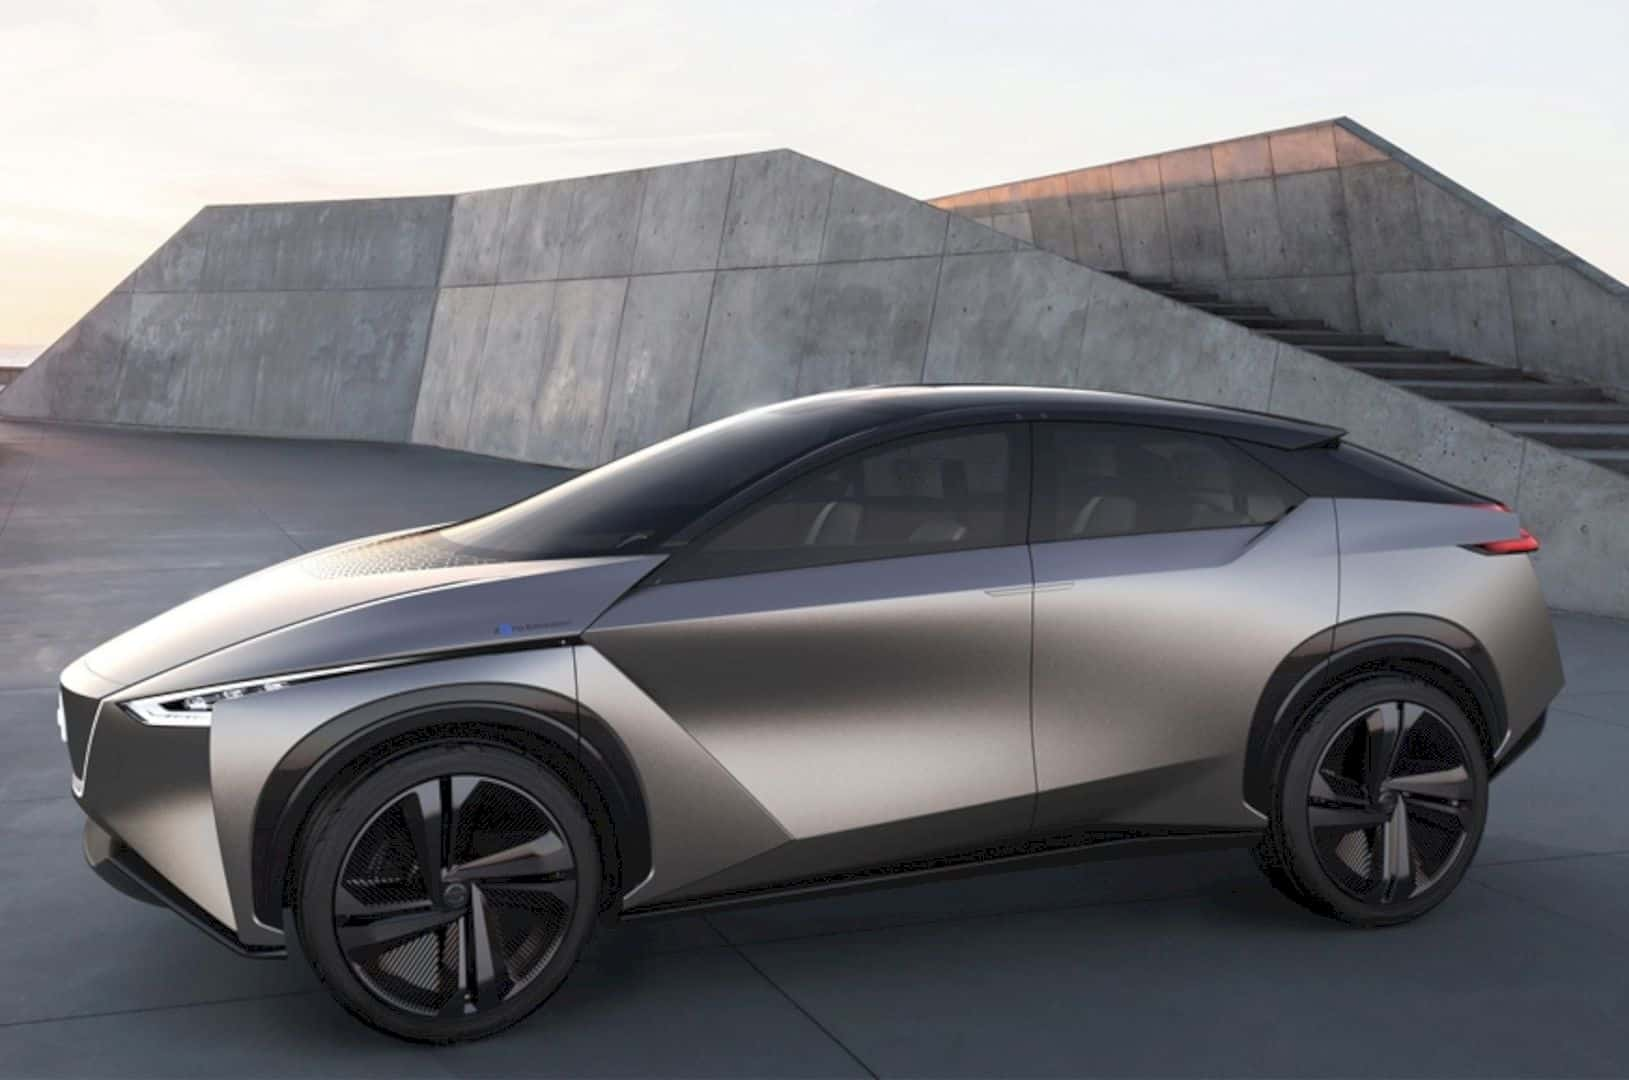 Nissan IMx KURO Concept Take Zero-Emission Crossover Into The Next Level